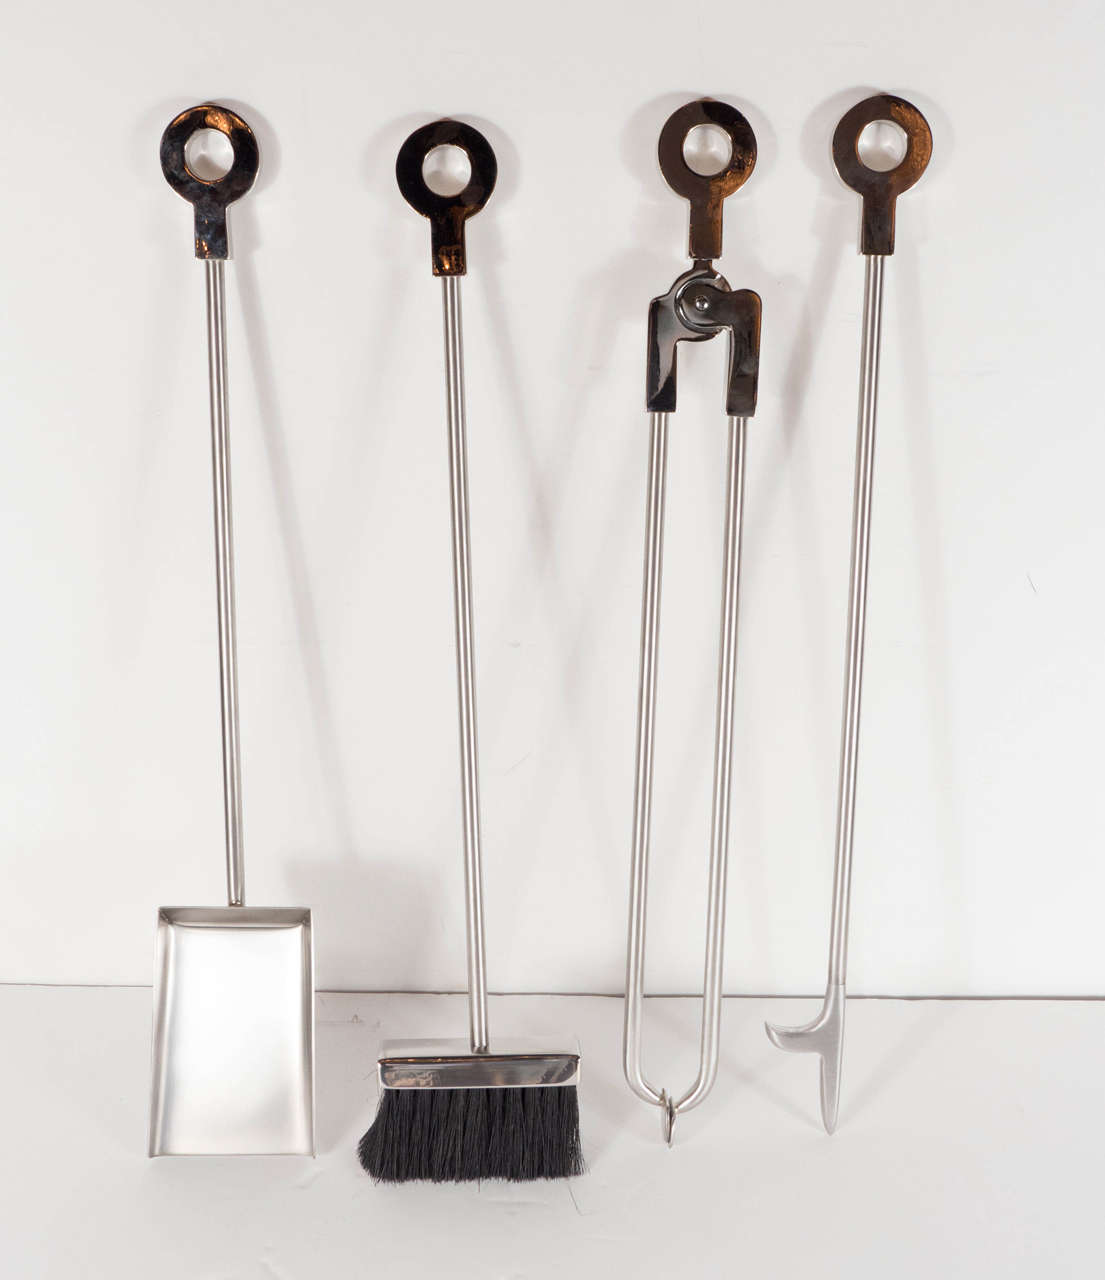 Contemporary Custom Modernist Four-Piece Fire Tool Set in Polished and Brushed Nickel For Sale